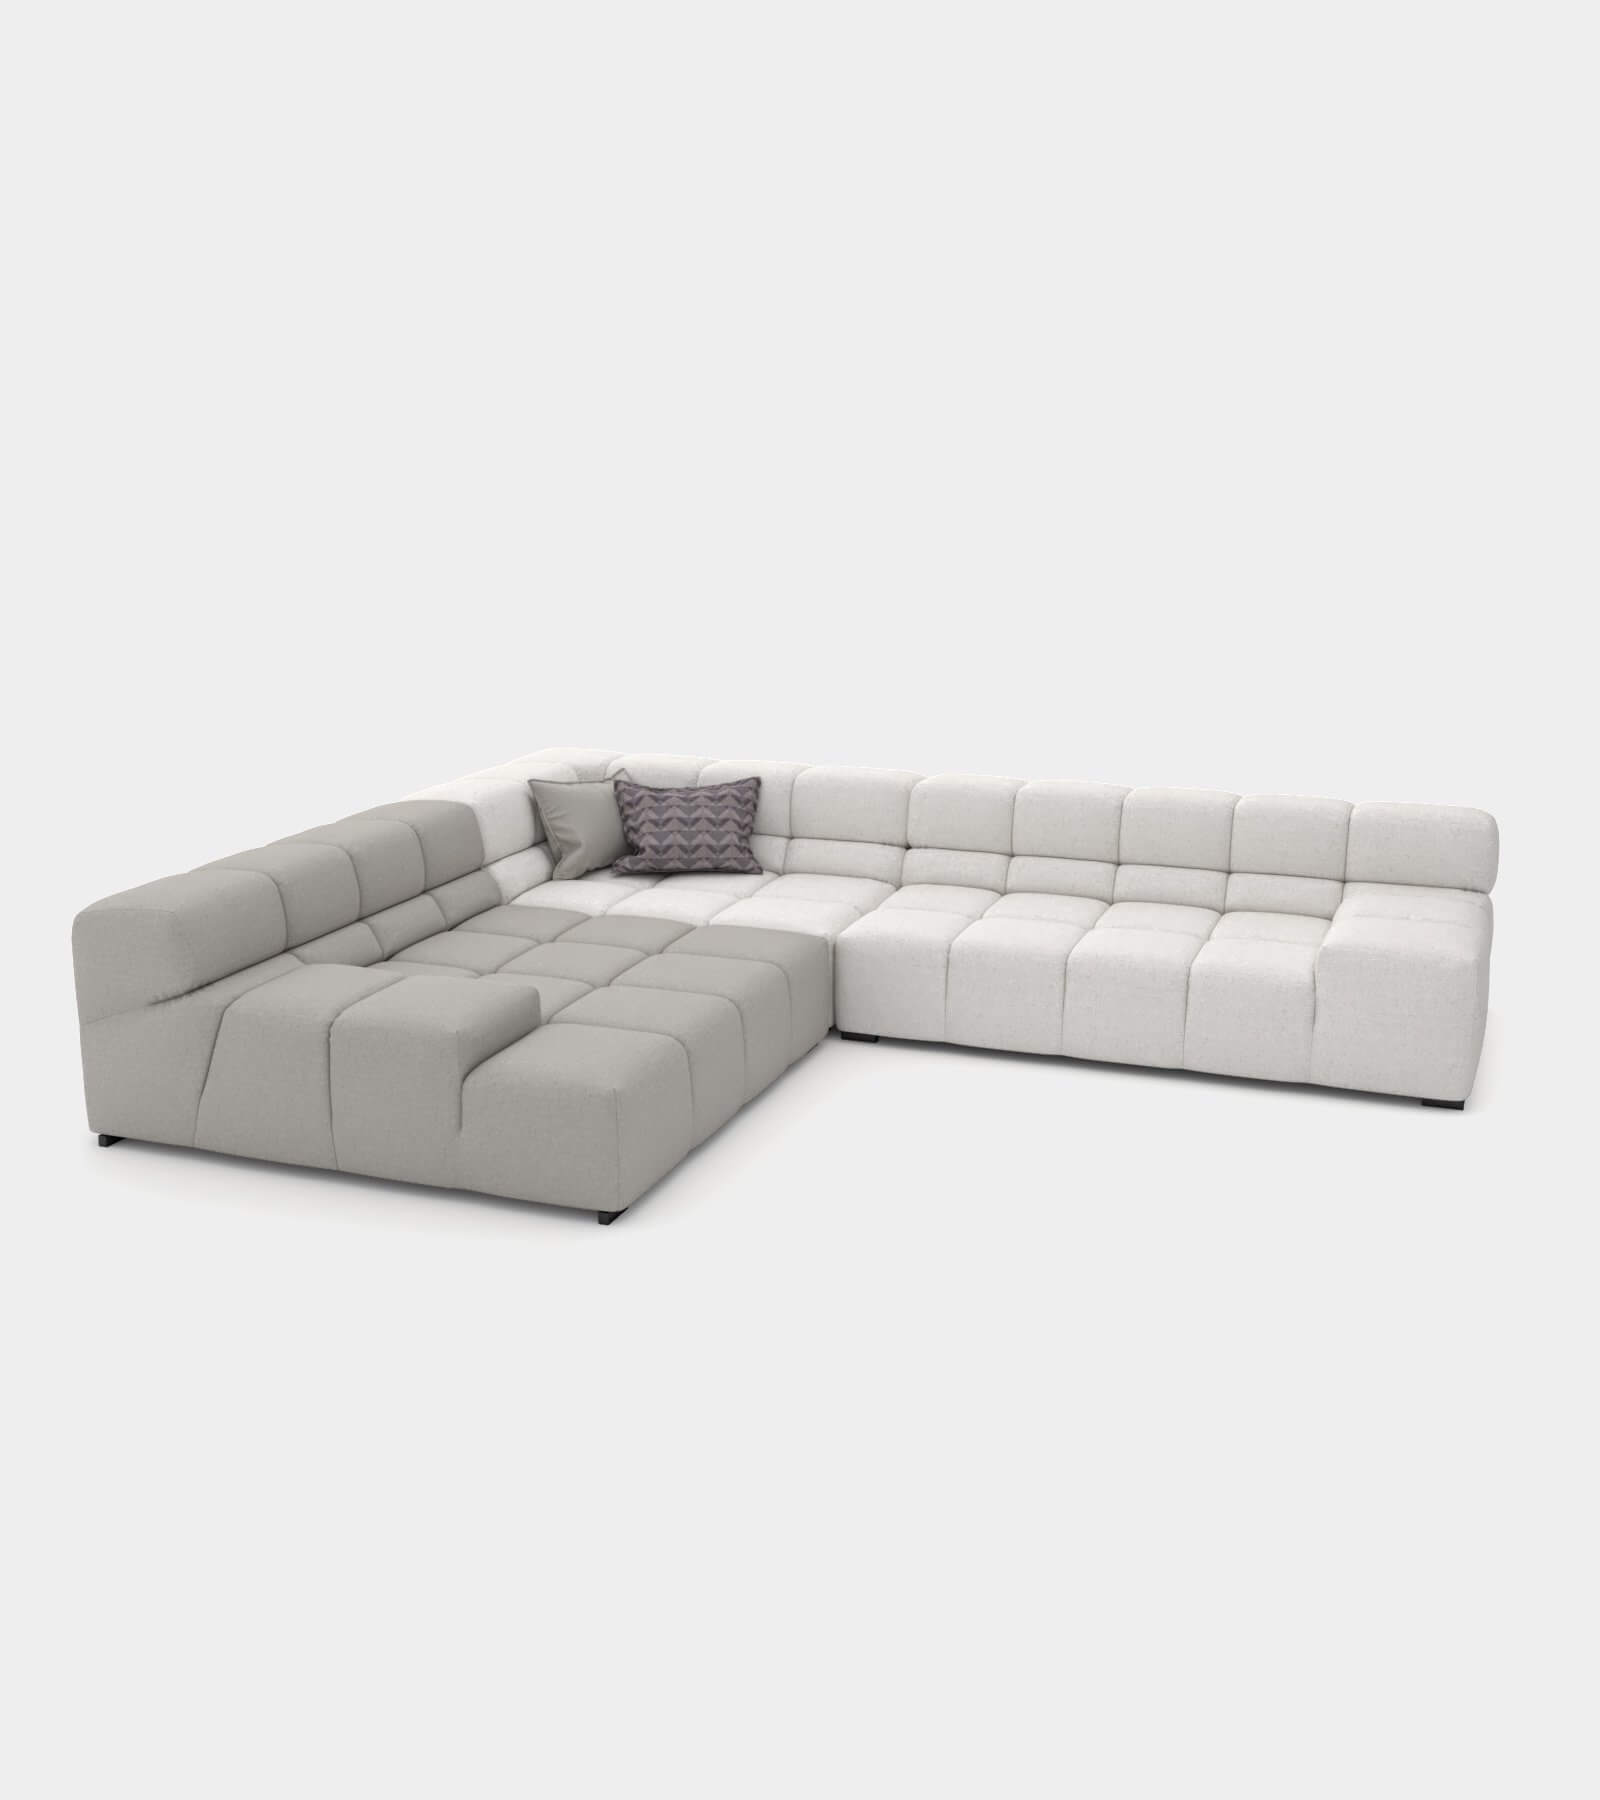 Modular couch system - 3D Model